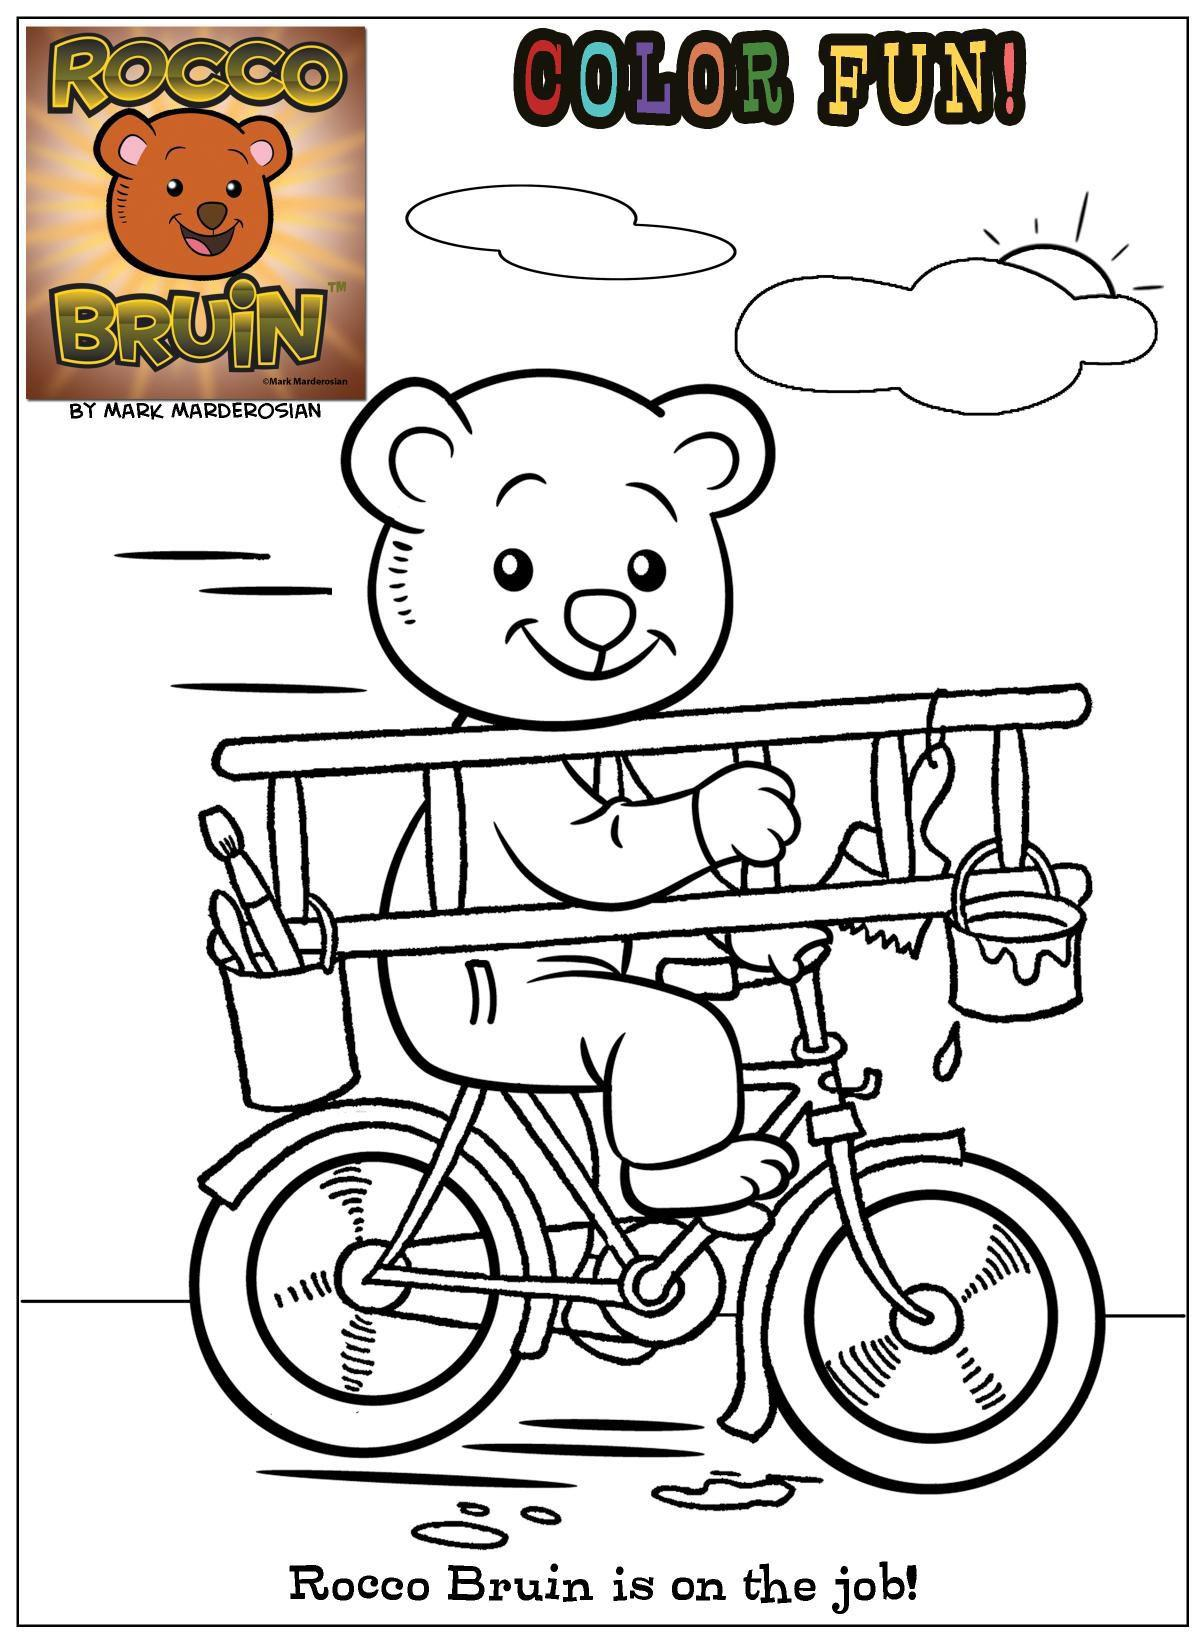 Coloring with Rocco Bruin - On the Job